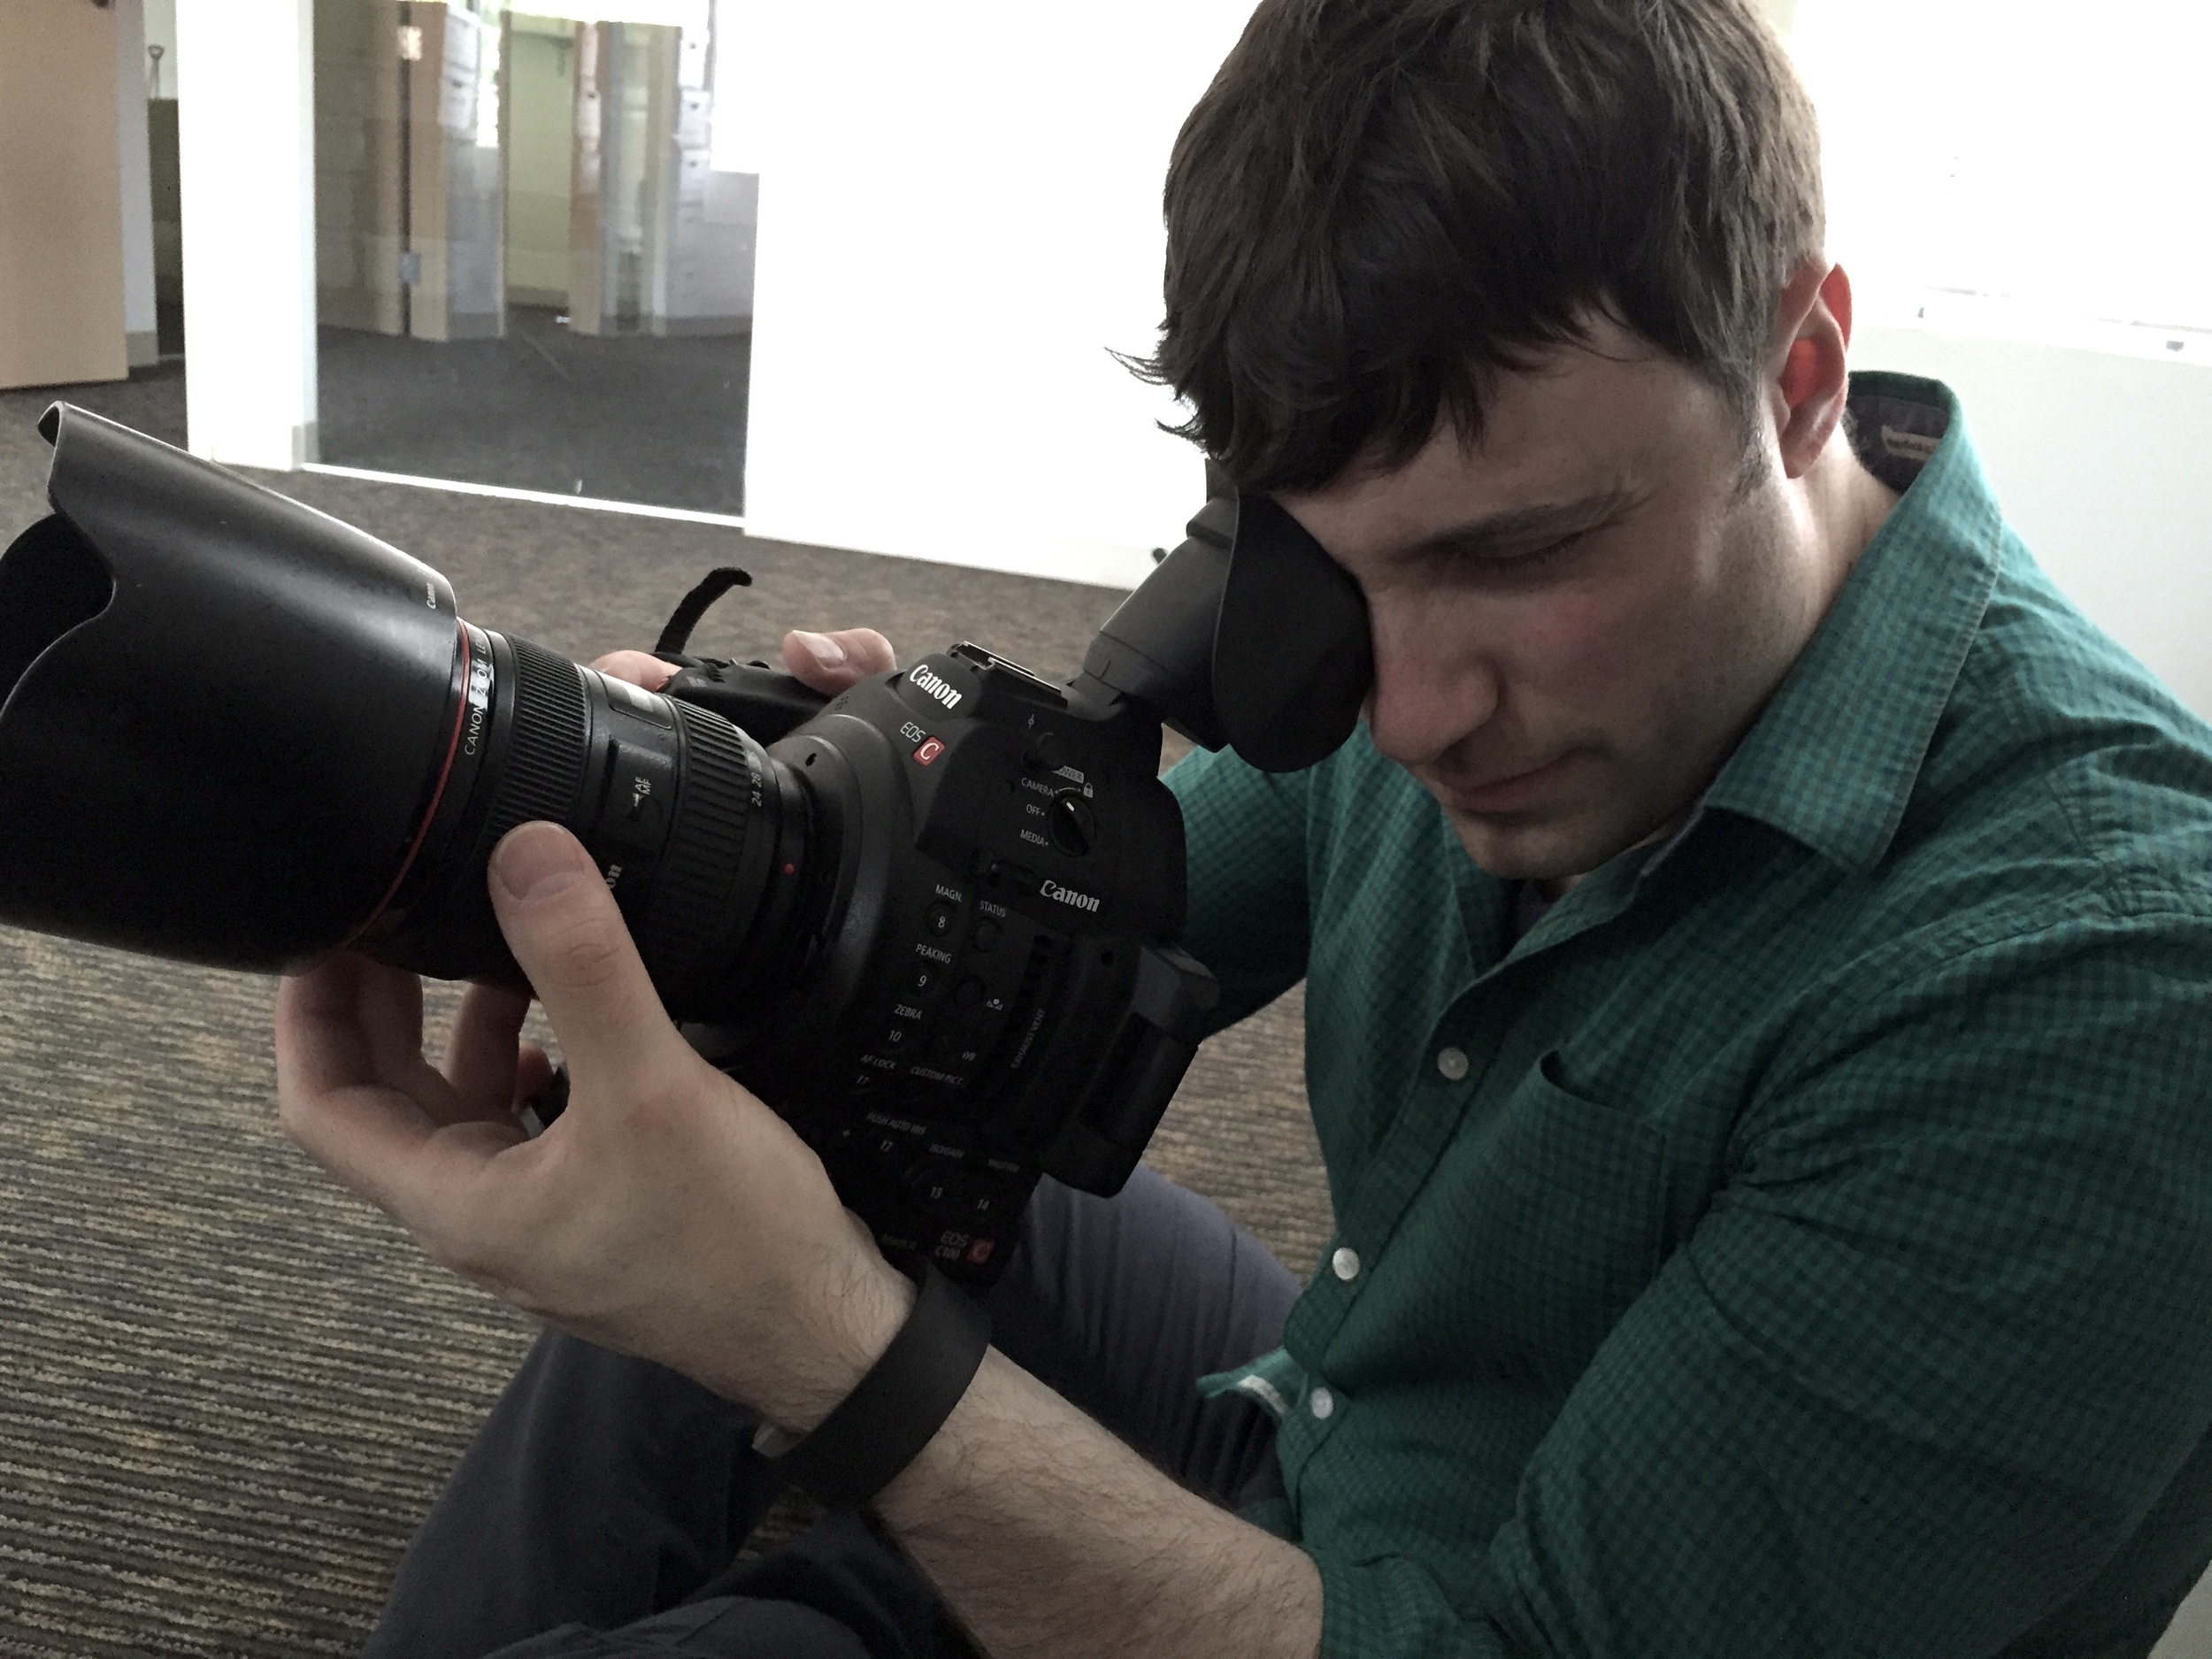 For low-angle shots, the camera can be carefully stabilized between the knee and the pressure against the viewfinder.